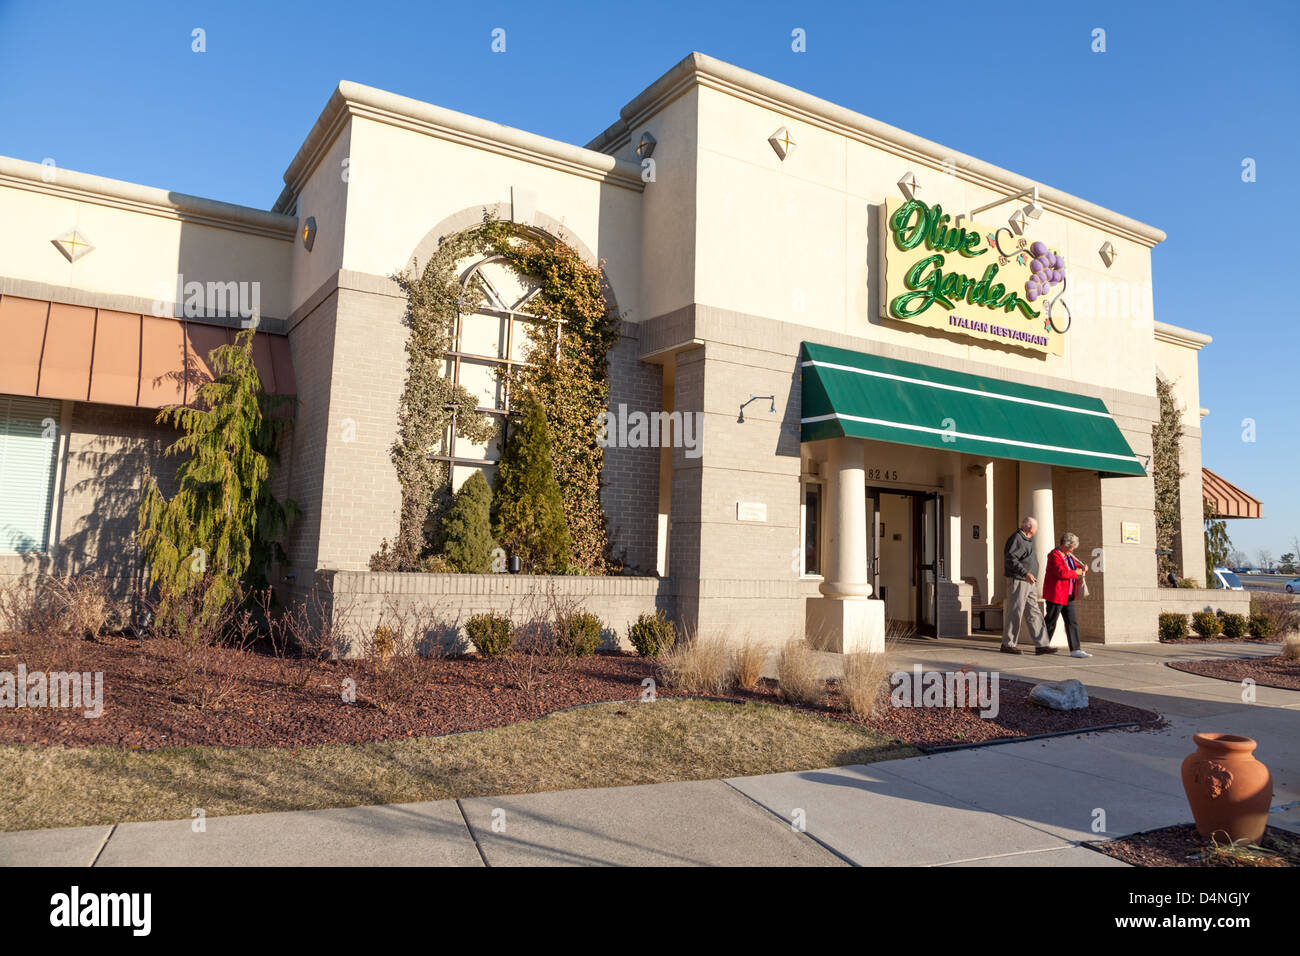 a typical olive garden restaurant baltimore county maryland stock image - Olive Garden Francise